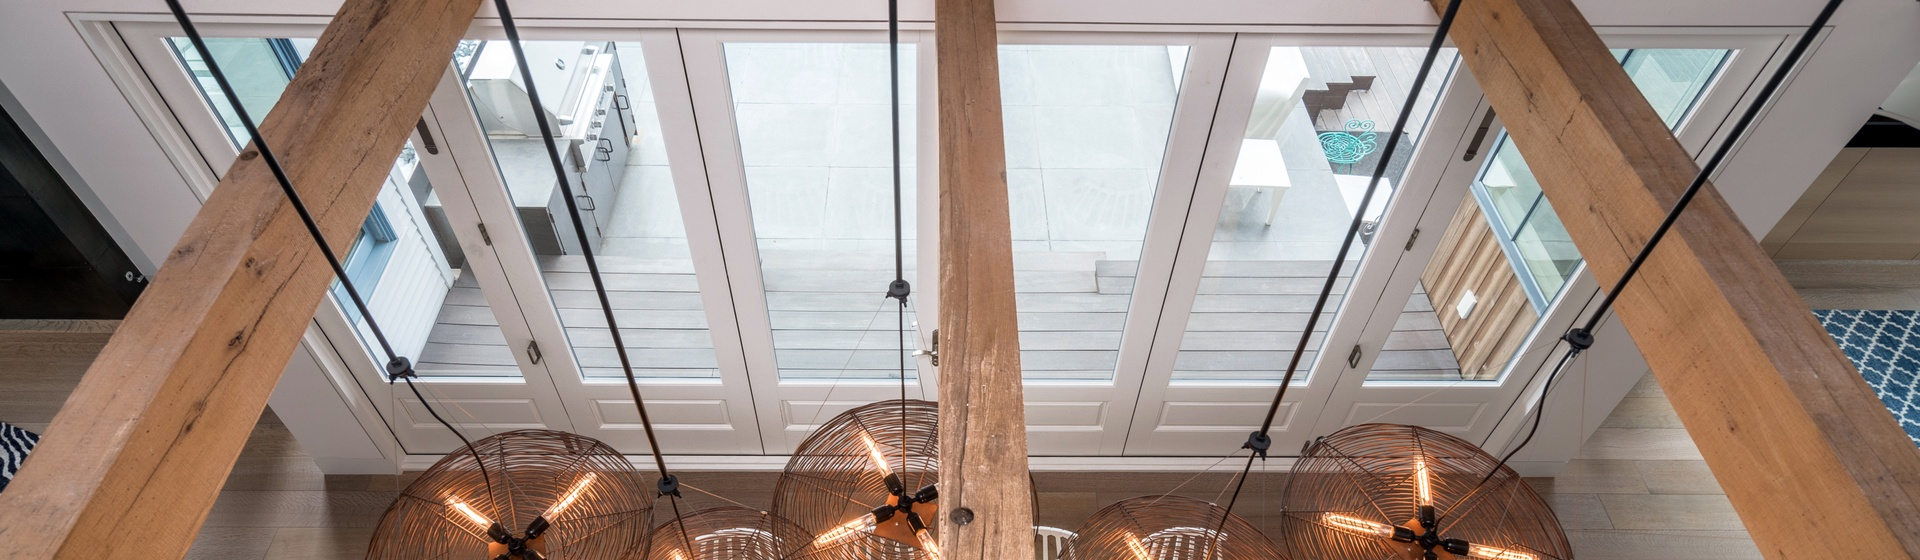 17-Telluride-The-Sunnyside-View-Down-to-Dining-Web.jpg